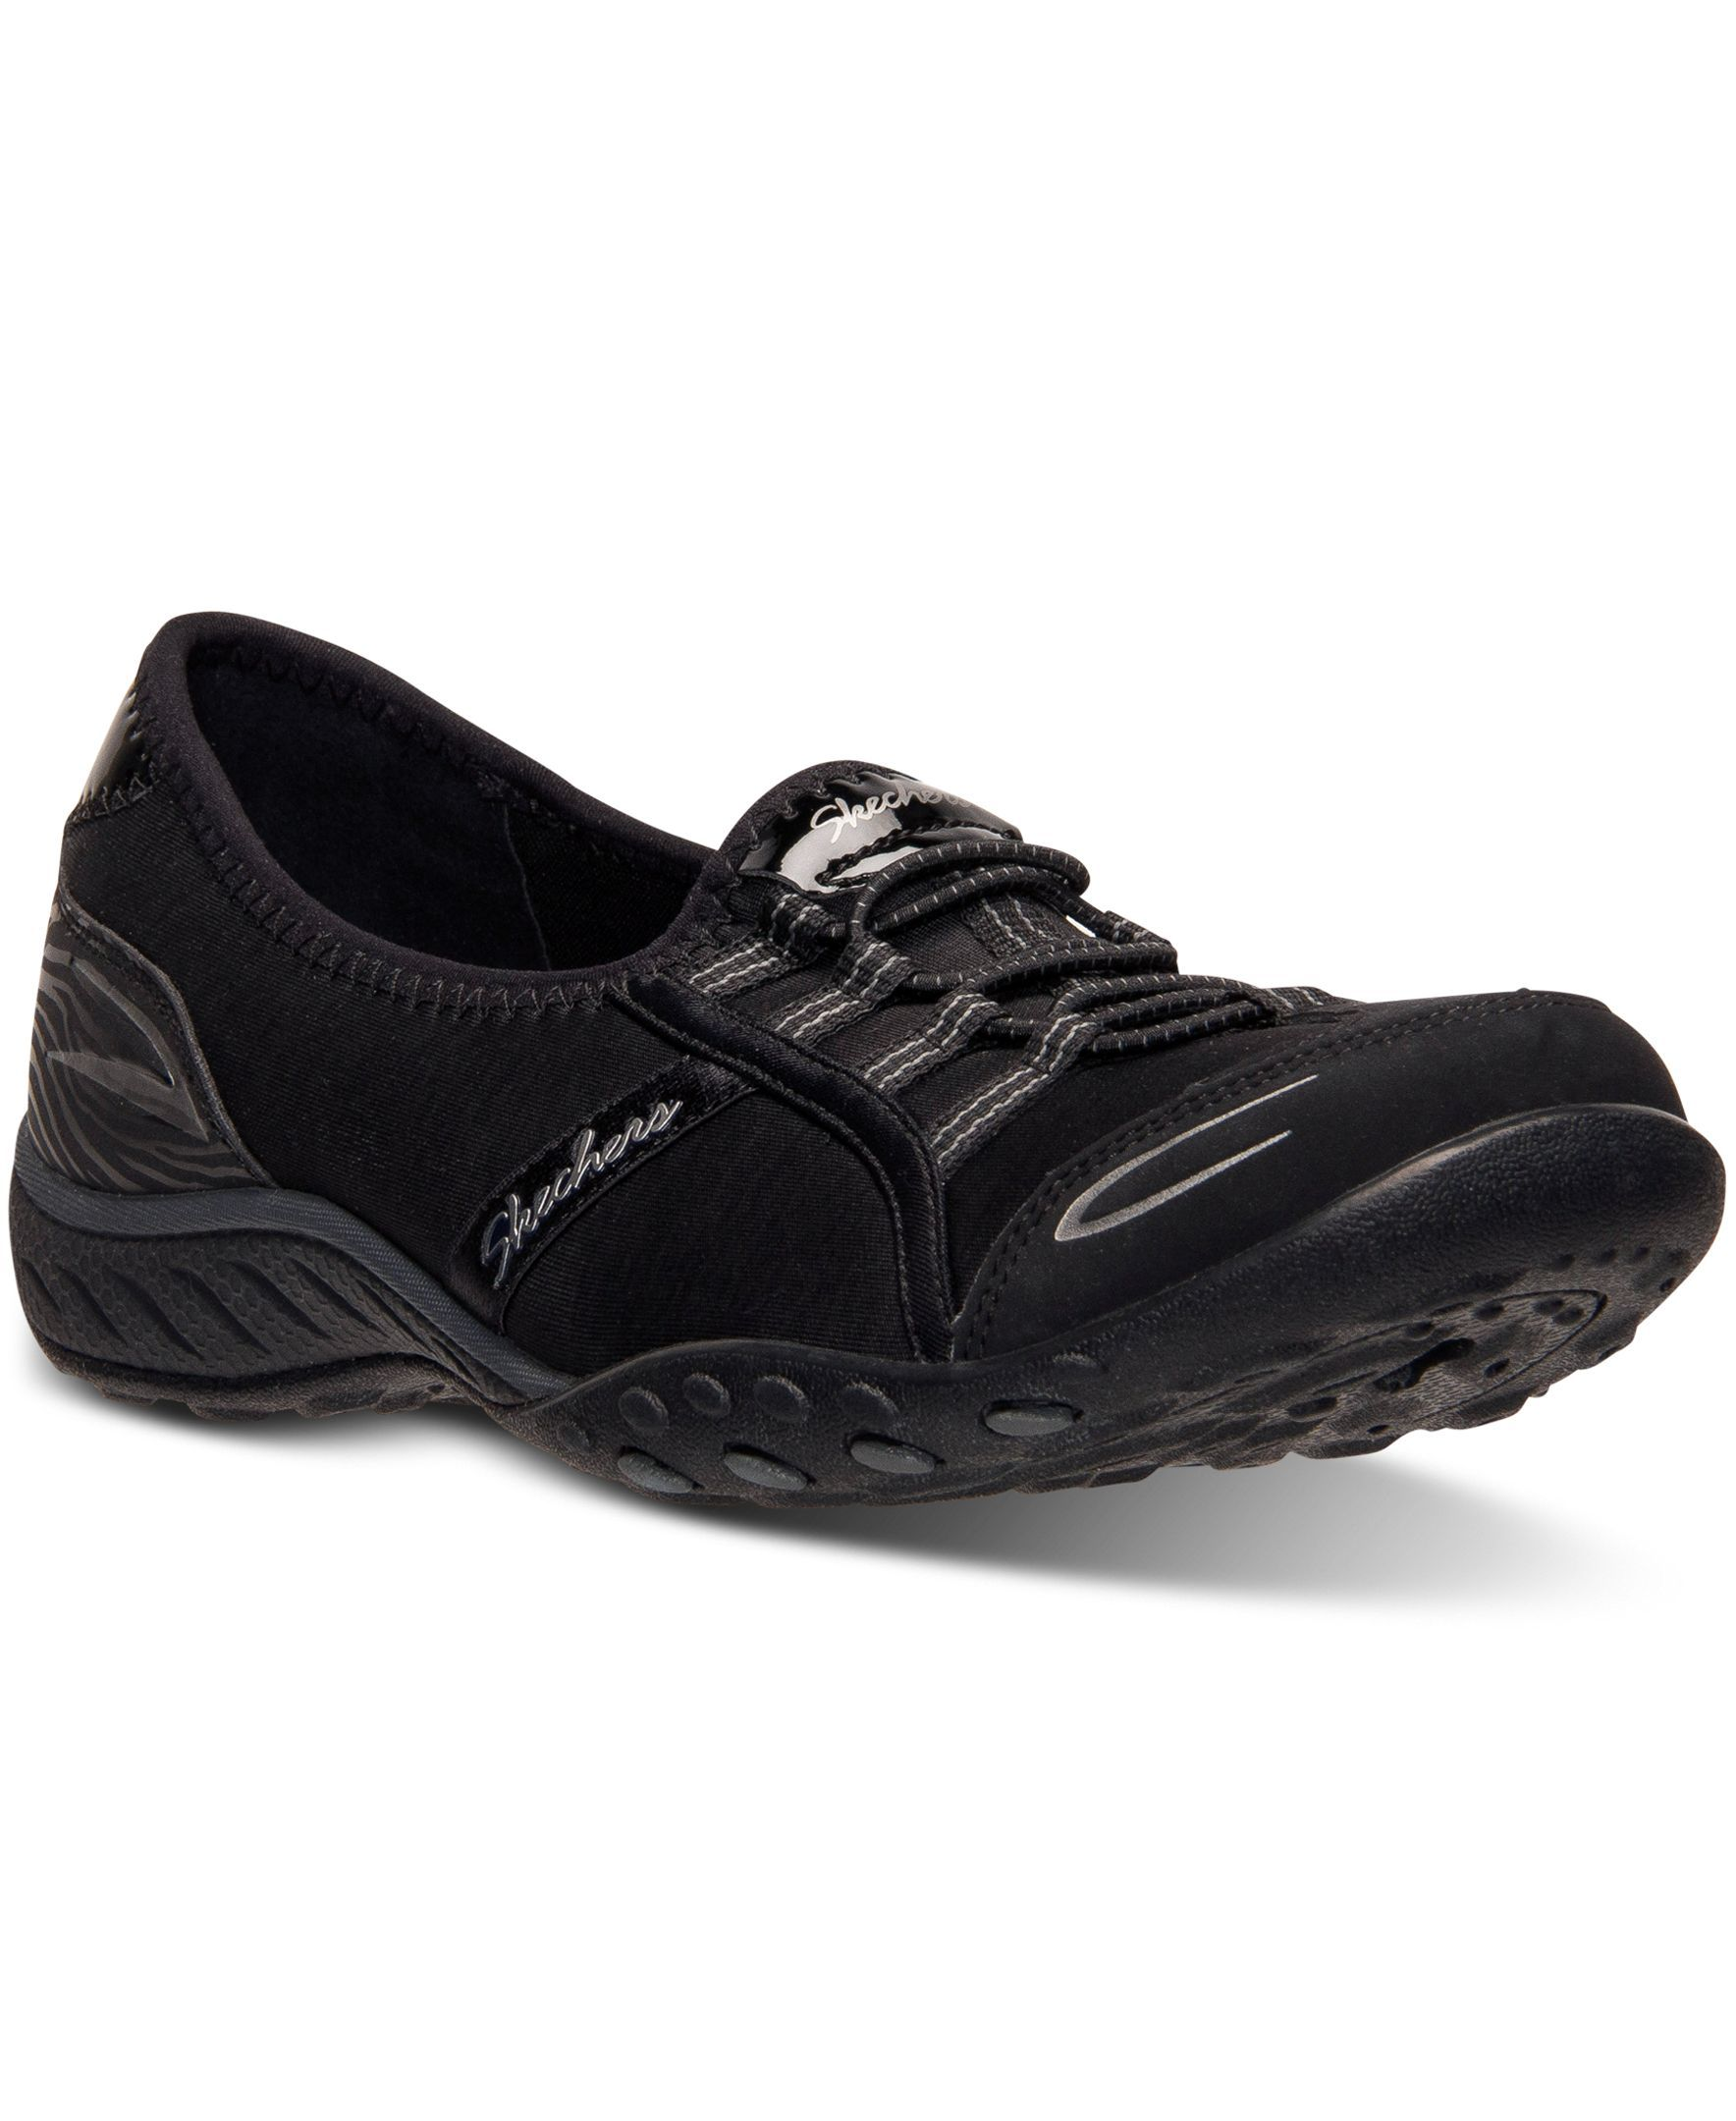 Skechers Women's Relaxed Fit: Breathe Easy - Good Life Memory Foam Casual  Sneakers from Finish